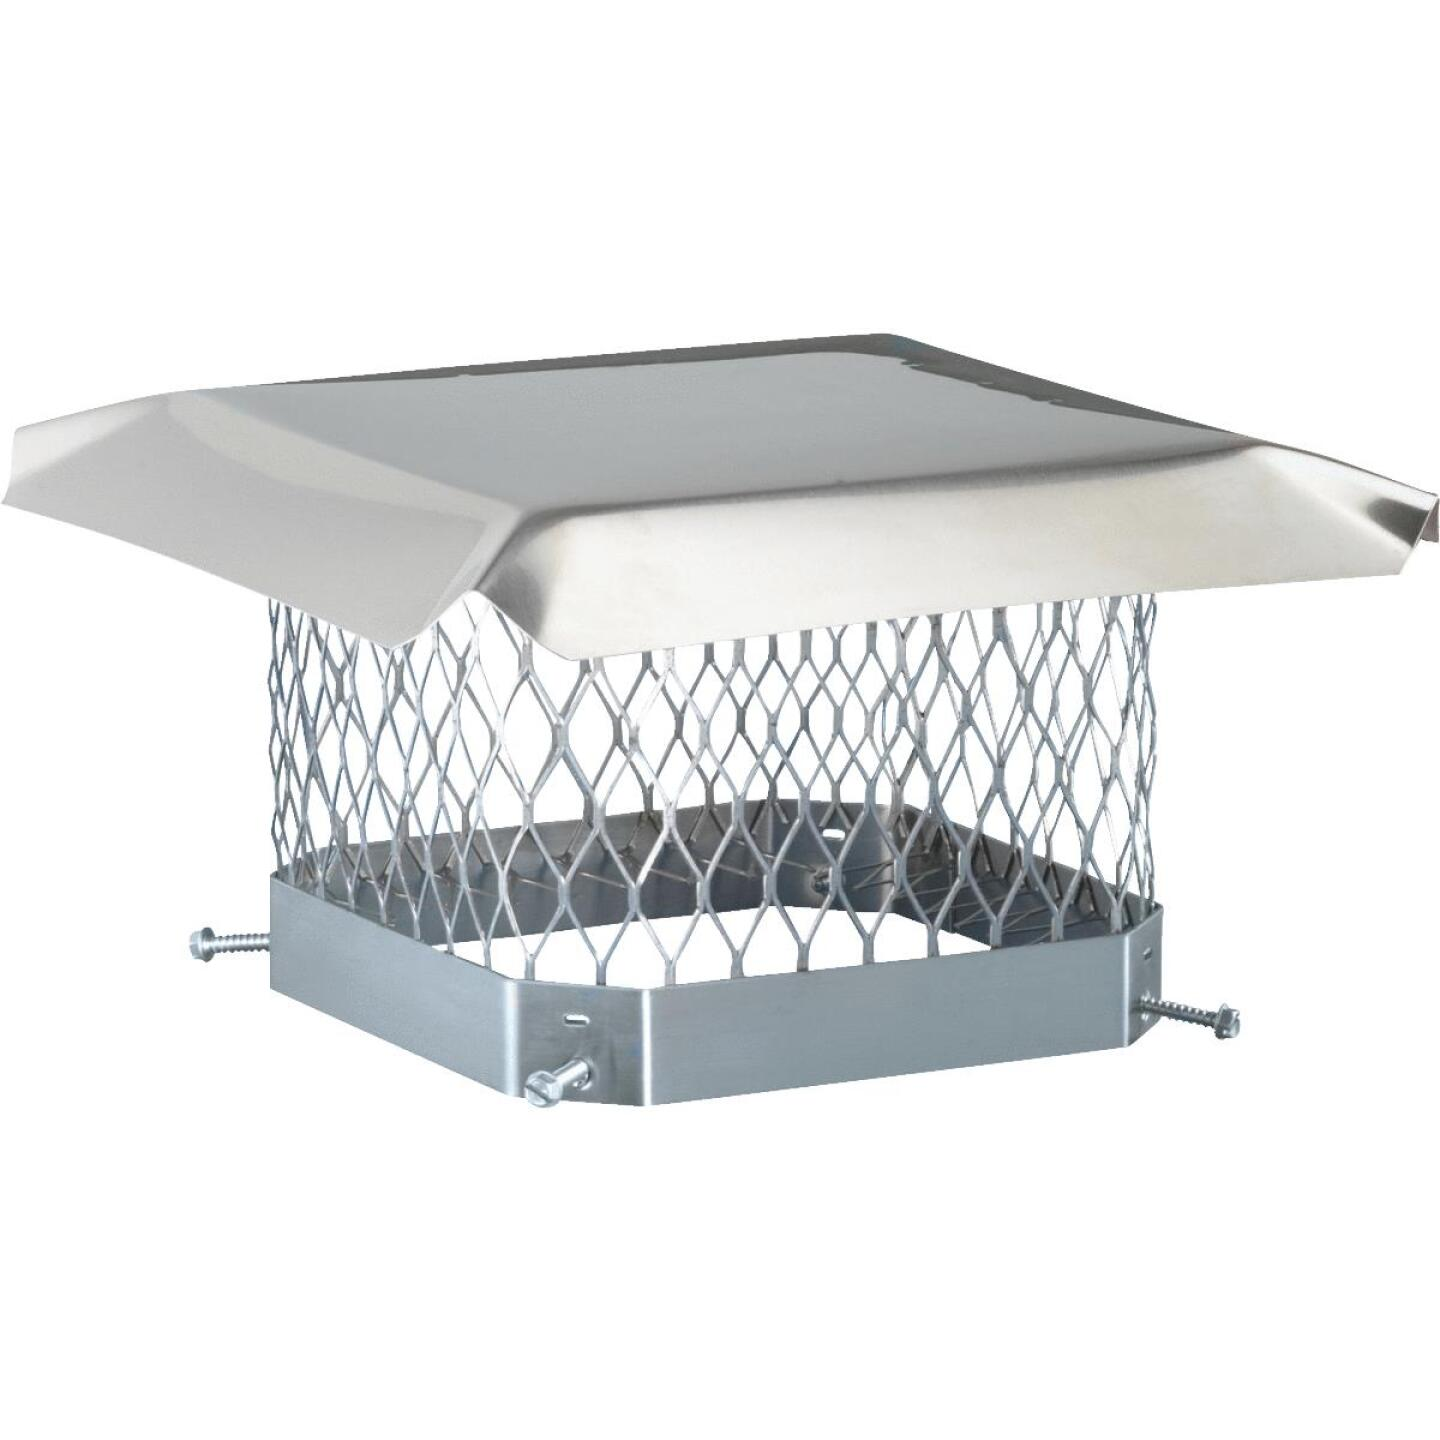 Shelter 9 In. x 9 In. Stainless Steel Single Flue Chimney Cap Image 1